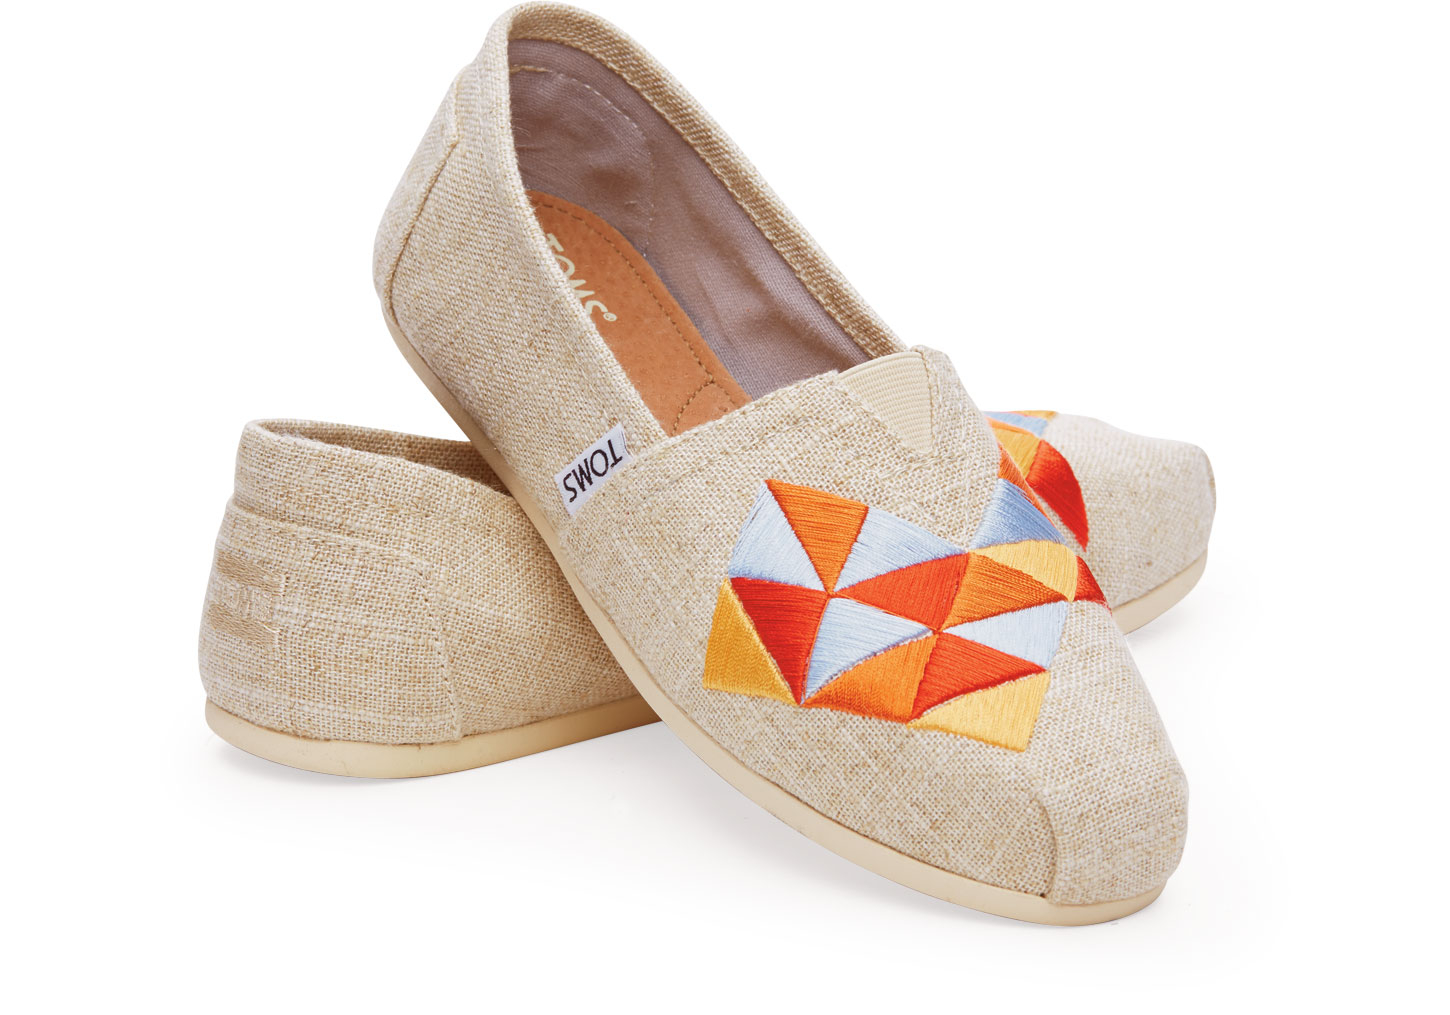 8620adb8b37 Lyst - TOMS Natural Burlap Embroidery Women s Classics in Natural